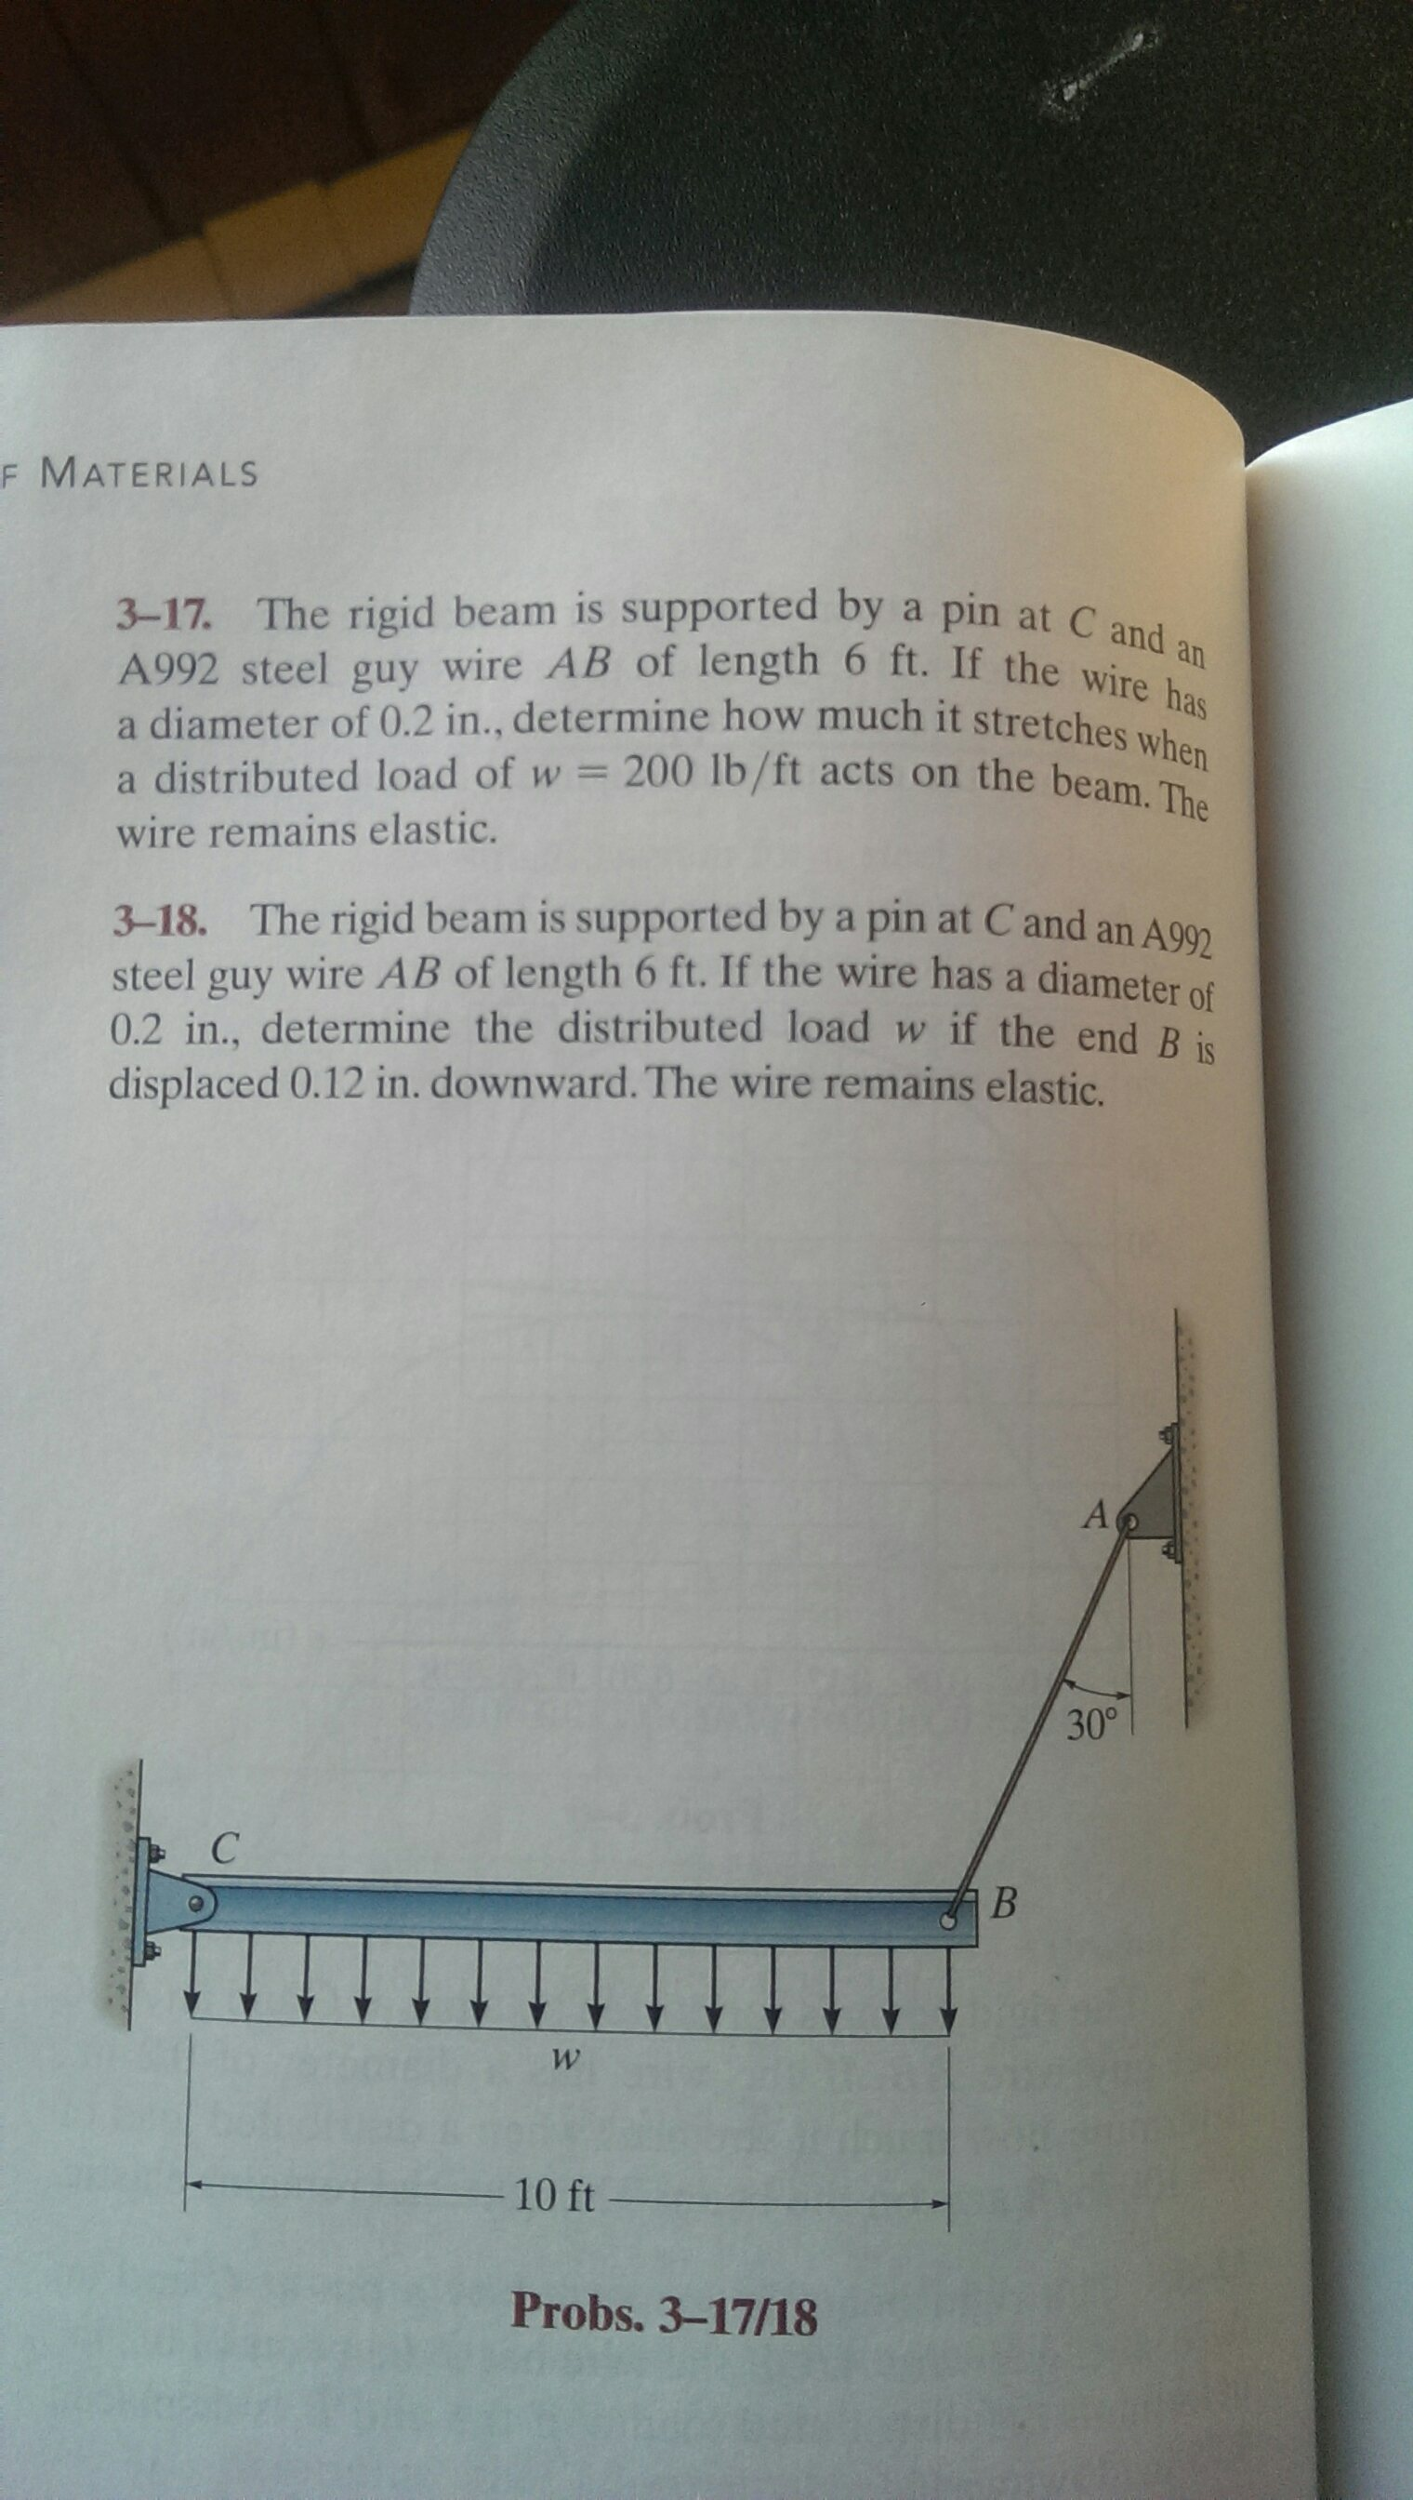 Solved: The Rigid Beam Is Supported By A Pin At C And A992 ...